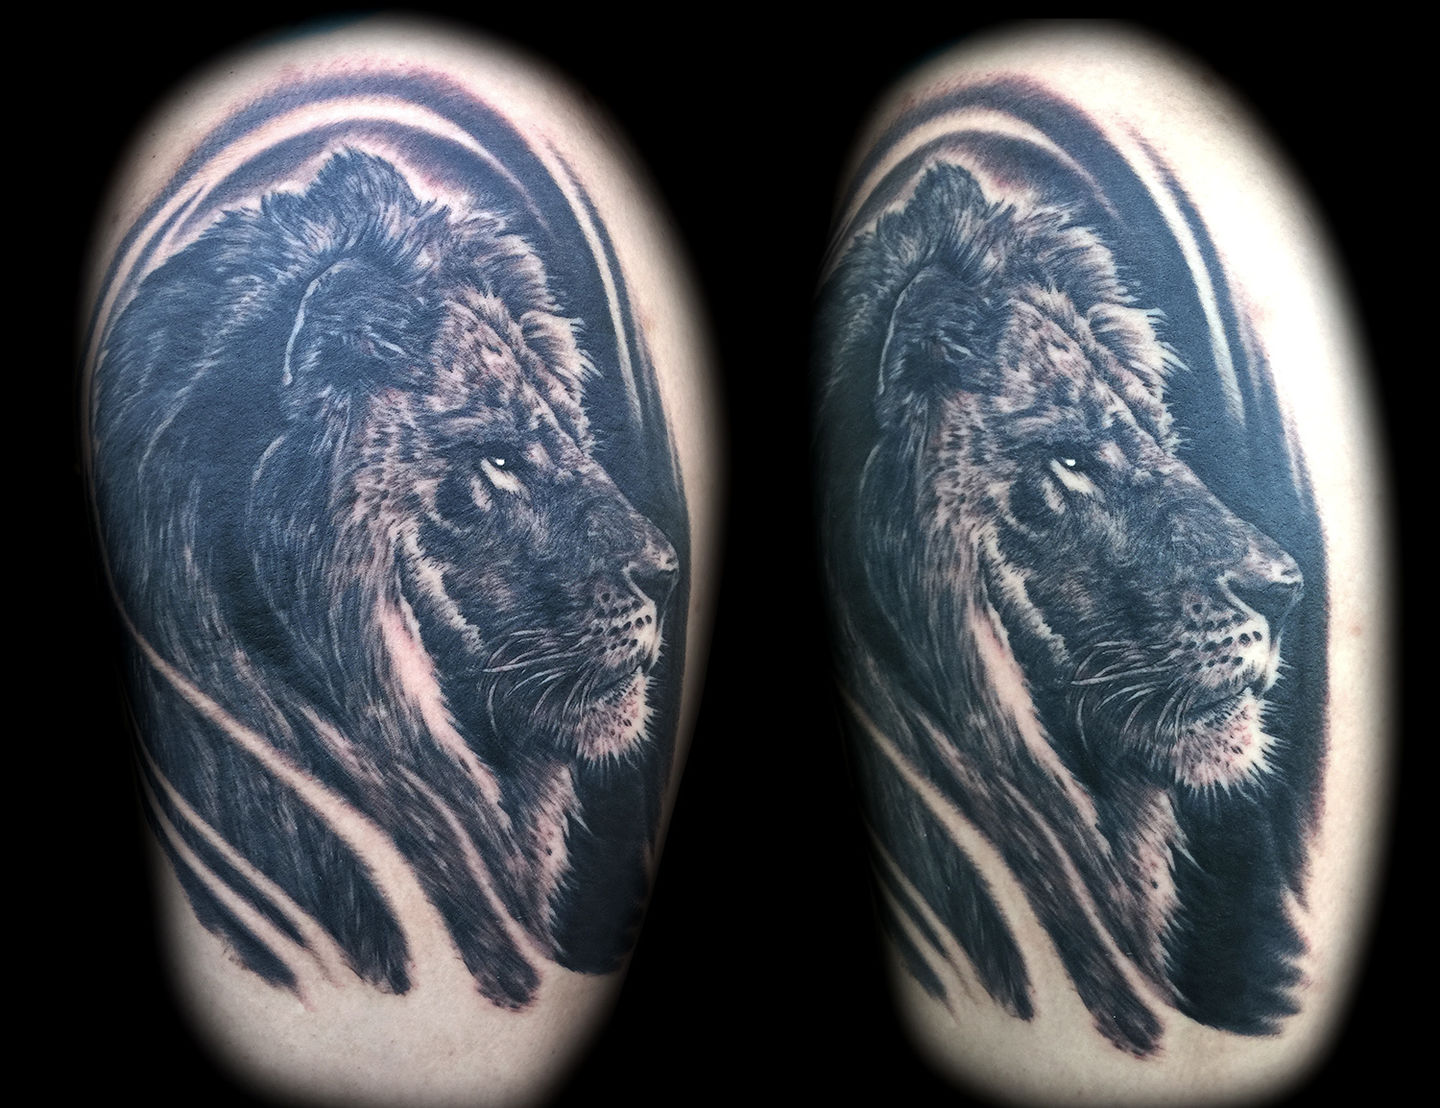 Best-las-vegas-tattoo-artists-shops-joe-riley-inner-visions-tattoo-lion-tattoos